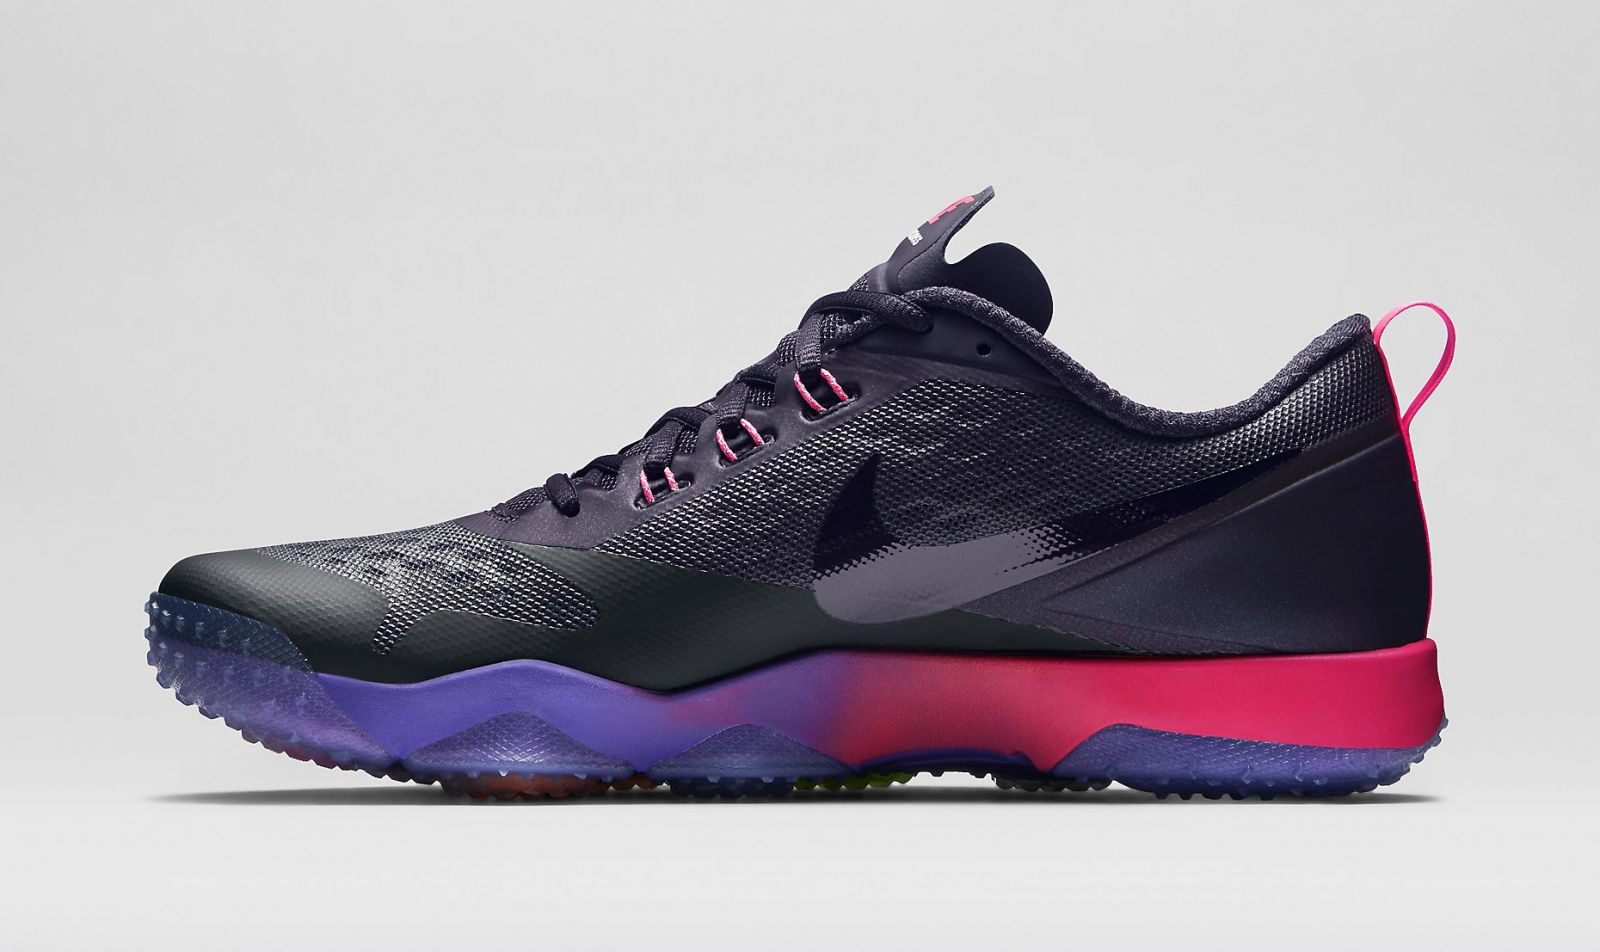 Buy Online Cheap Nike Zoom Run The One Cave Purple Hyper Grape M